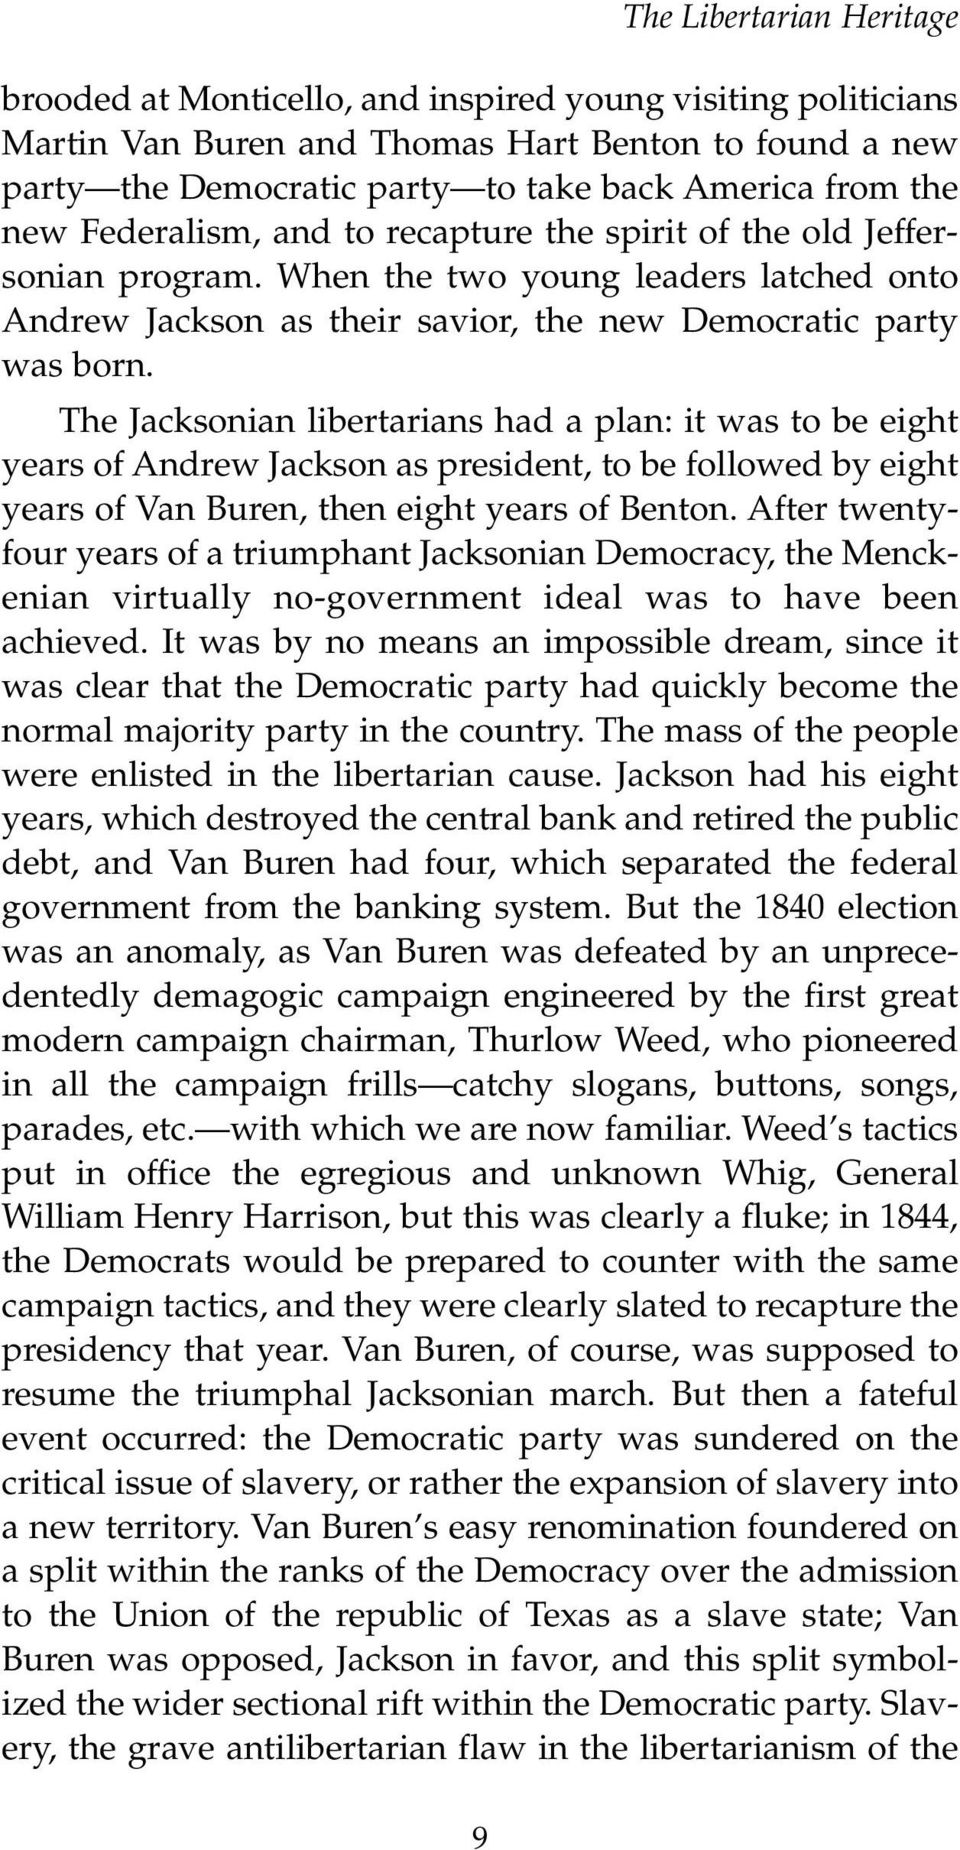 The Jacksonian libertarians had a plan: it was to be eight years of Andrew Jackson as president, to be followed by eight years of Van Buren, then eight years of Benton.